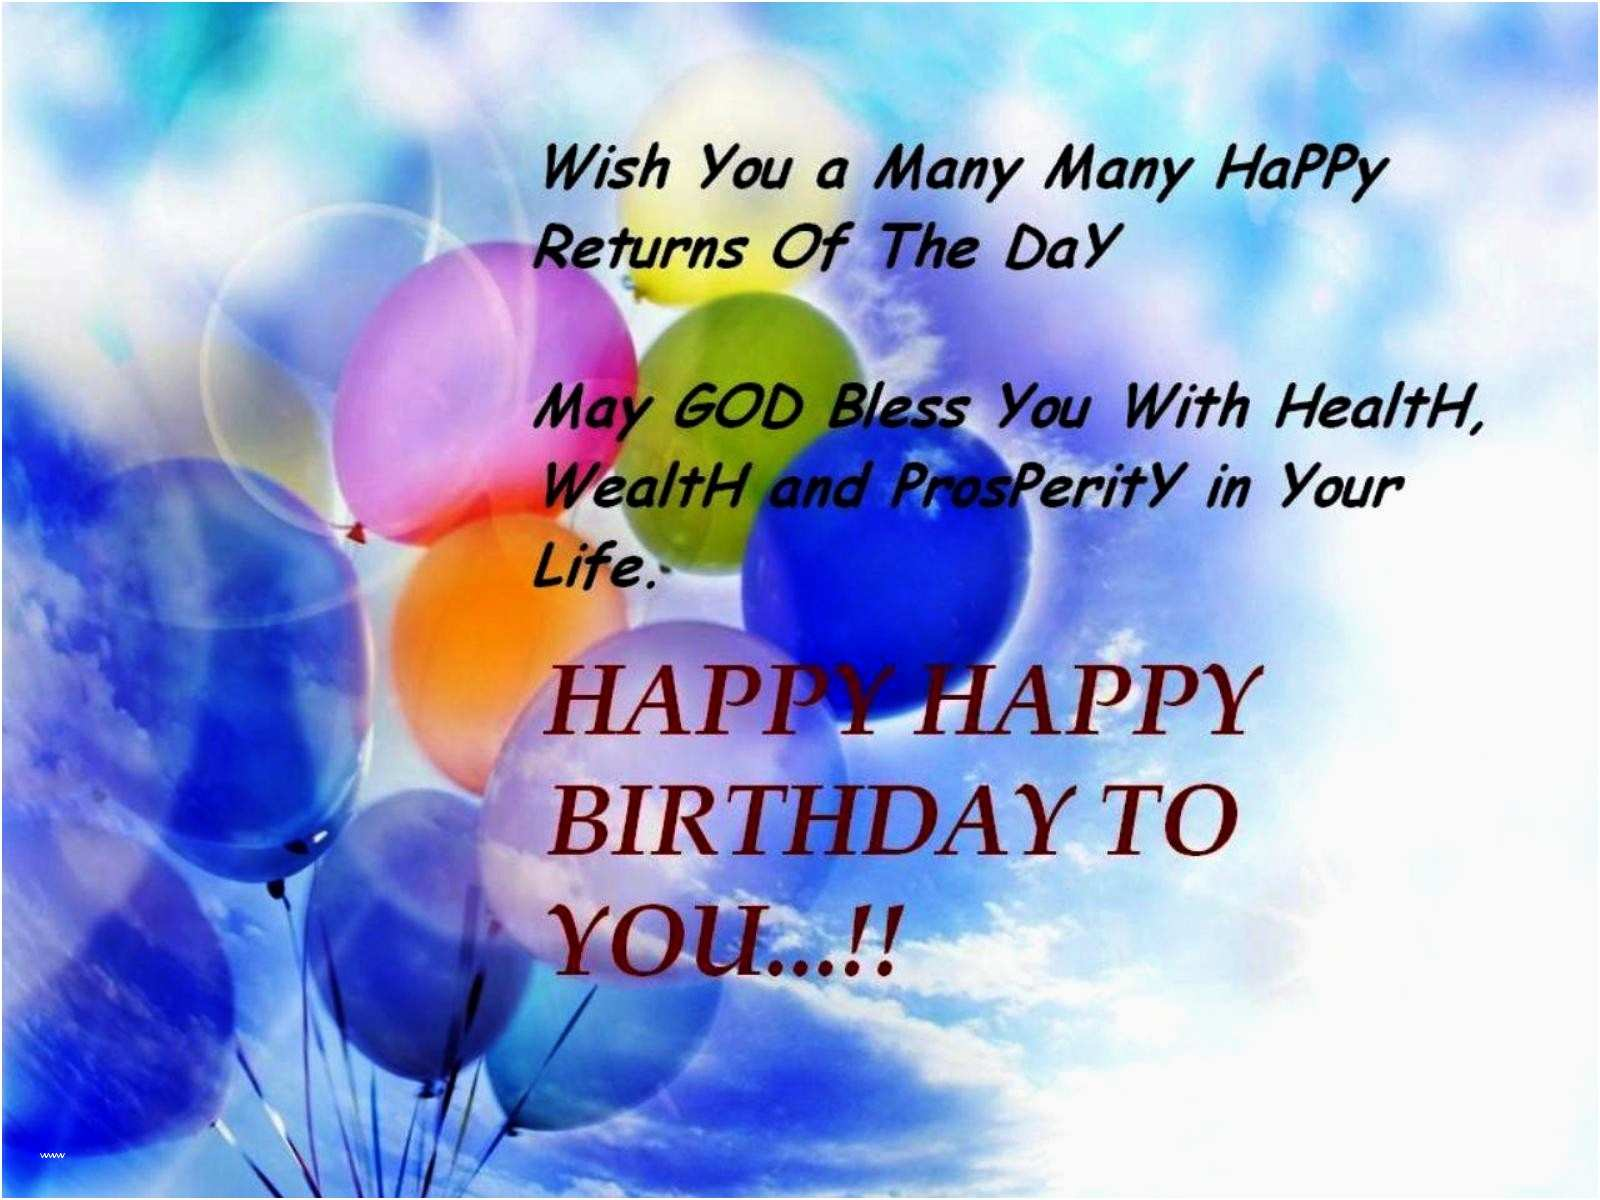 happy birthday blessings quotes ; happy-birthday-god-bless-images-inspirational-happy-birthday-religious-quotes-luxury-for-you-your-birthday-god-of-happy-birthday-god-bless-images